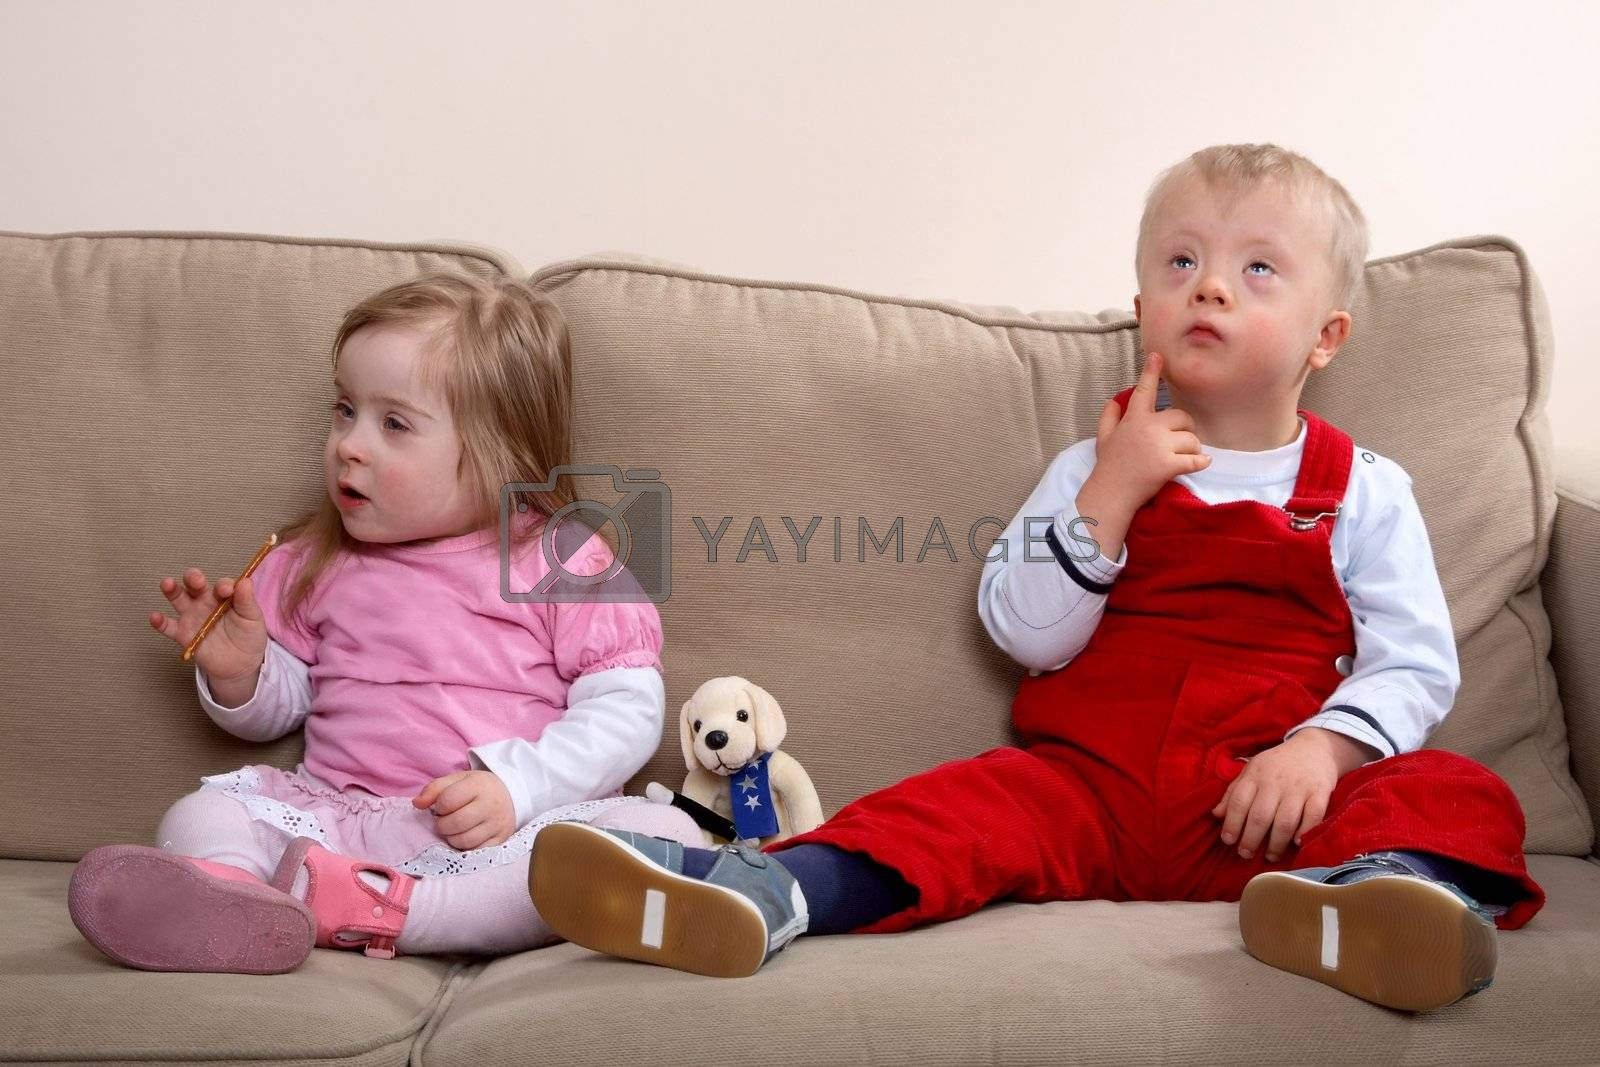 A little boy and girl with Down syndrome sitting on a sofa